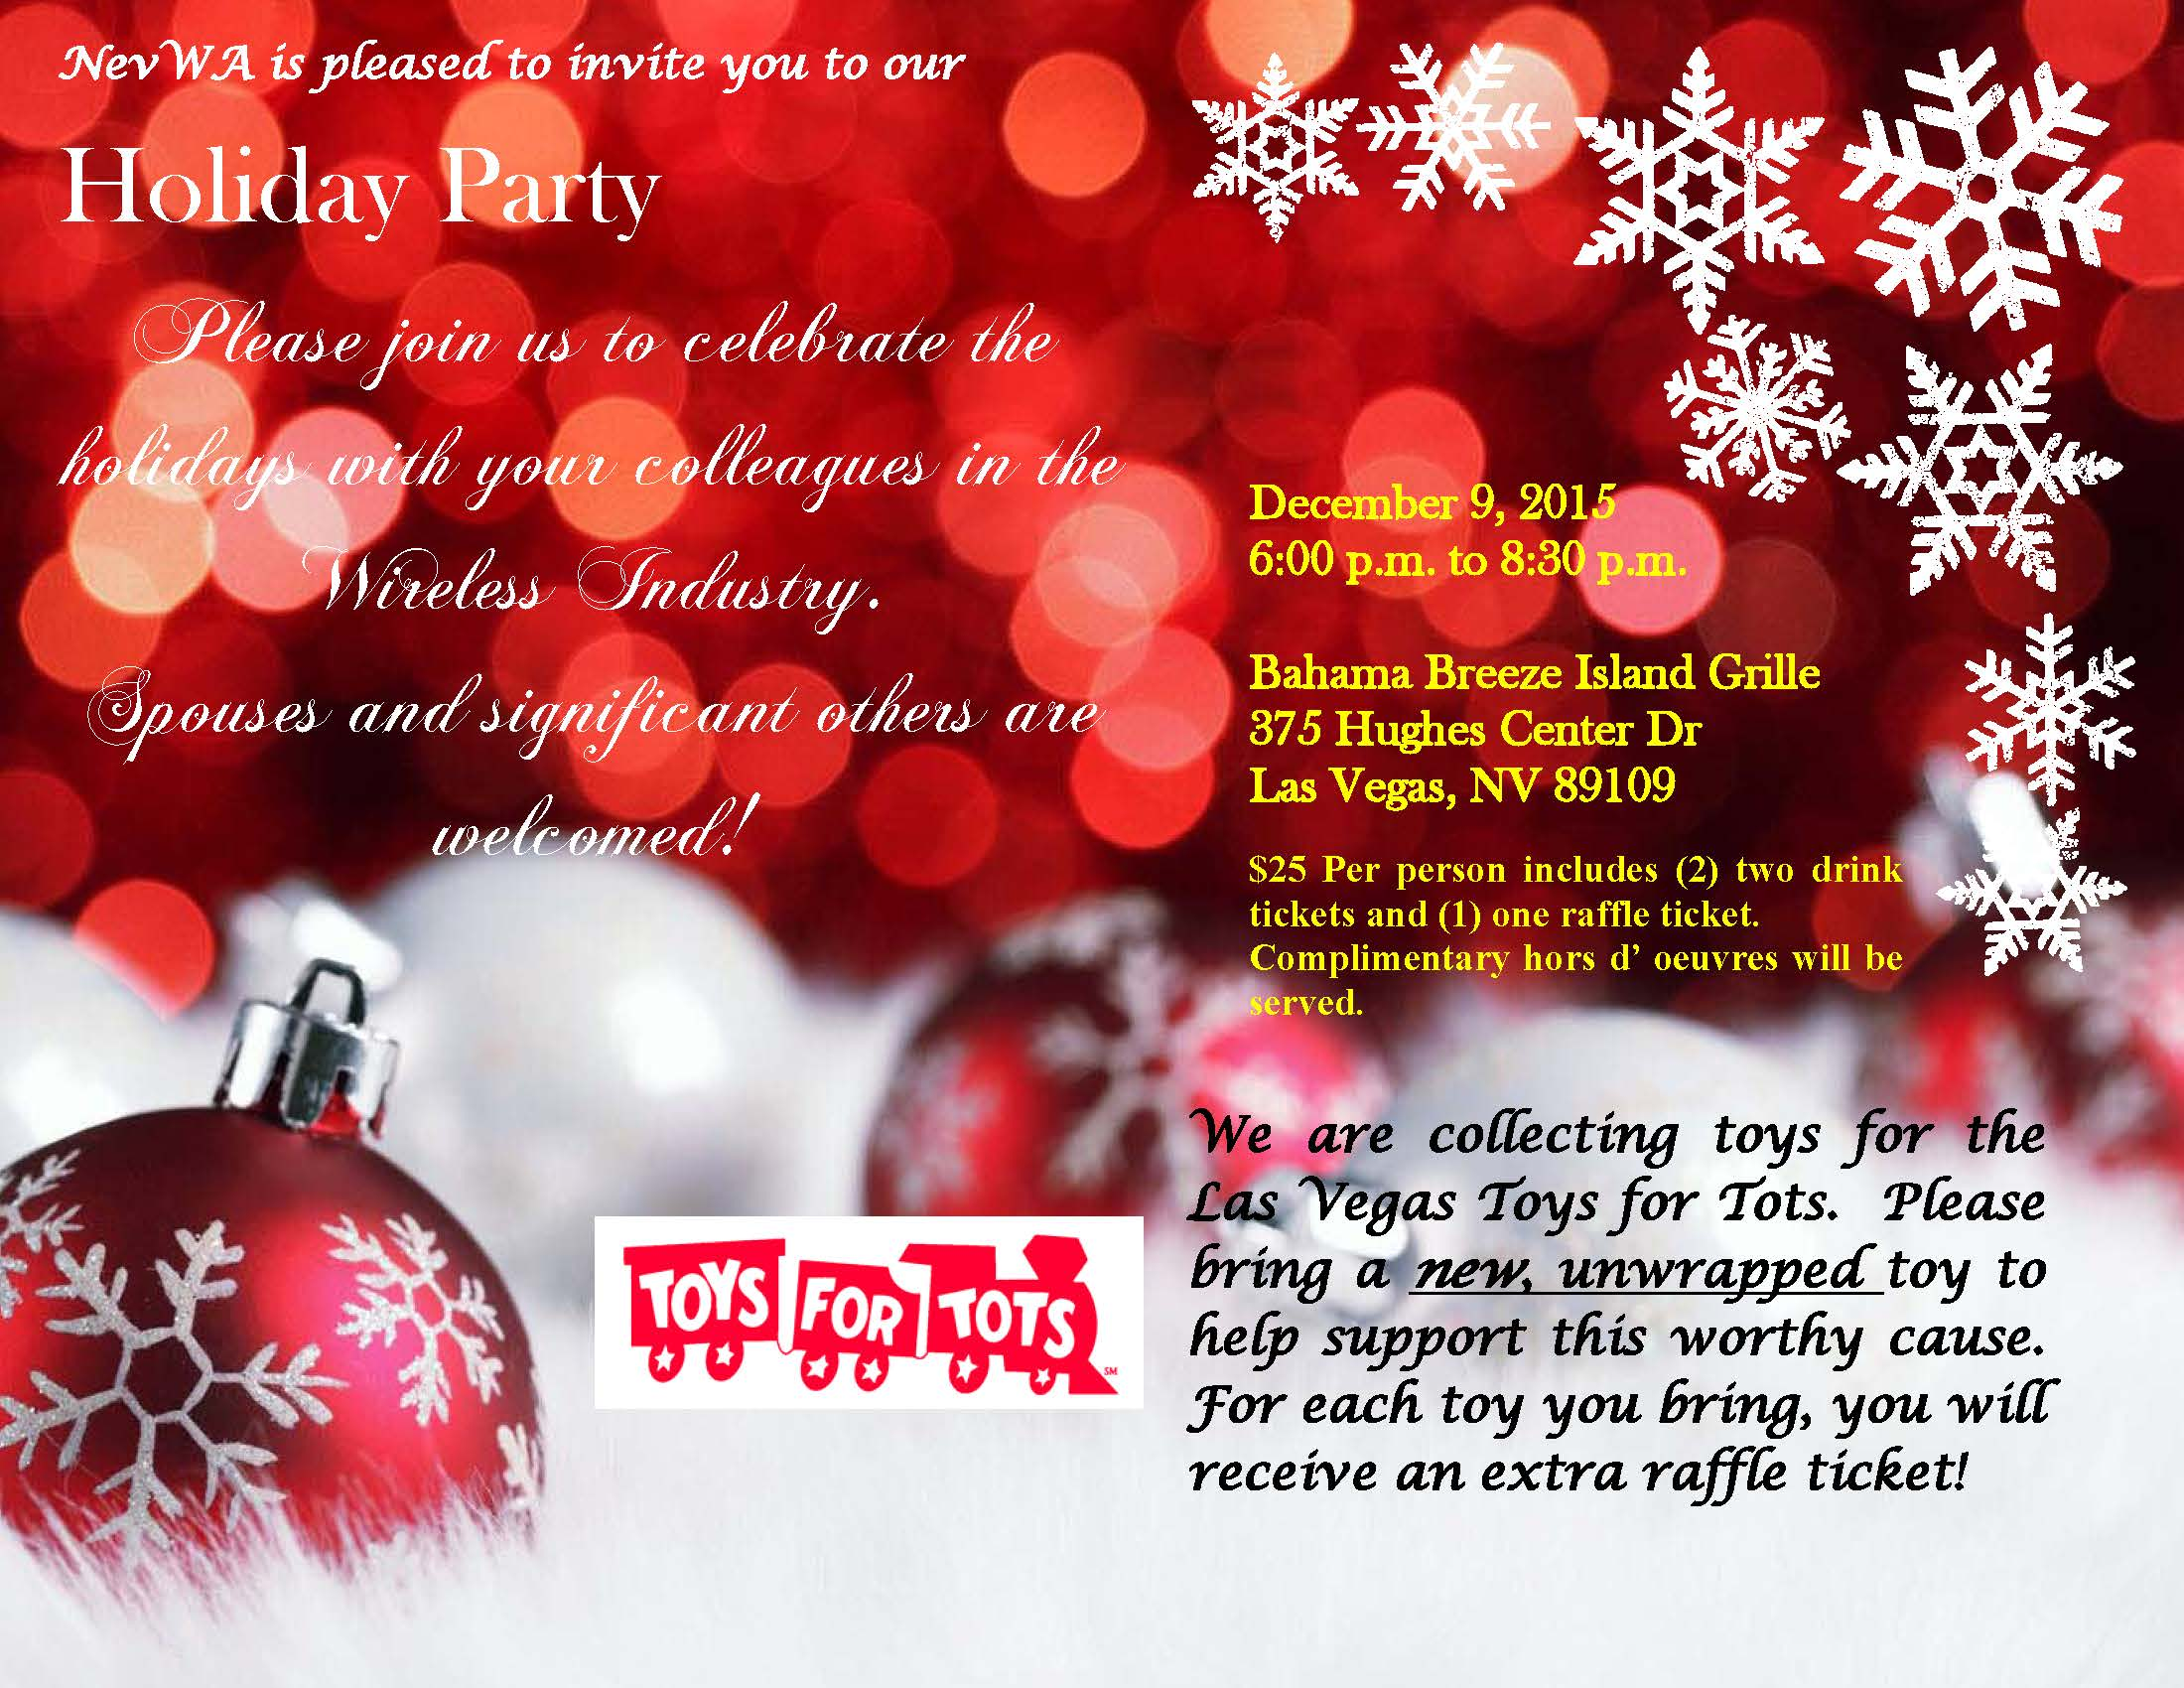 nevwa holiday partynevwa org support toys for tots by bringing a new unwrapped toy and receive an extra raffle ticket for each toy